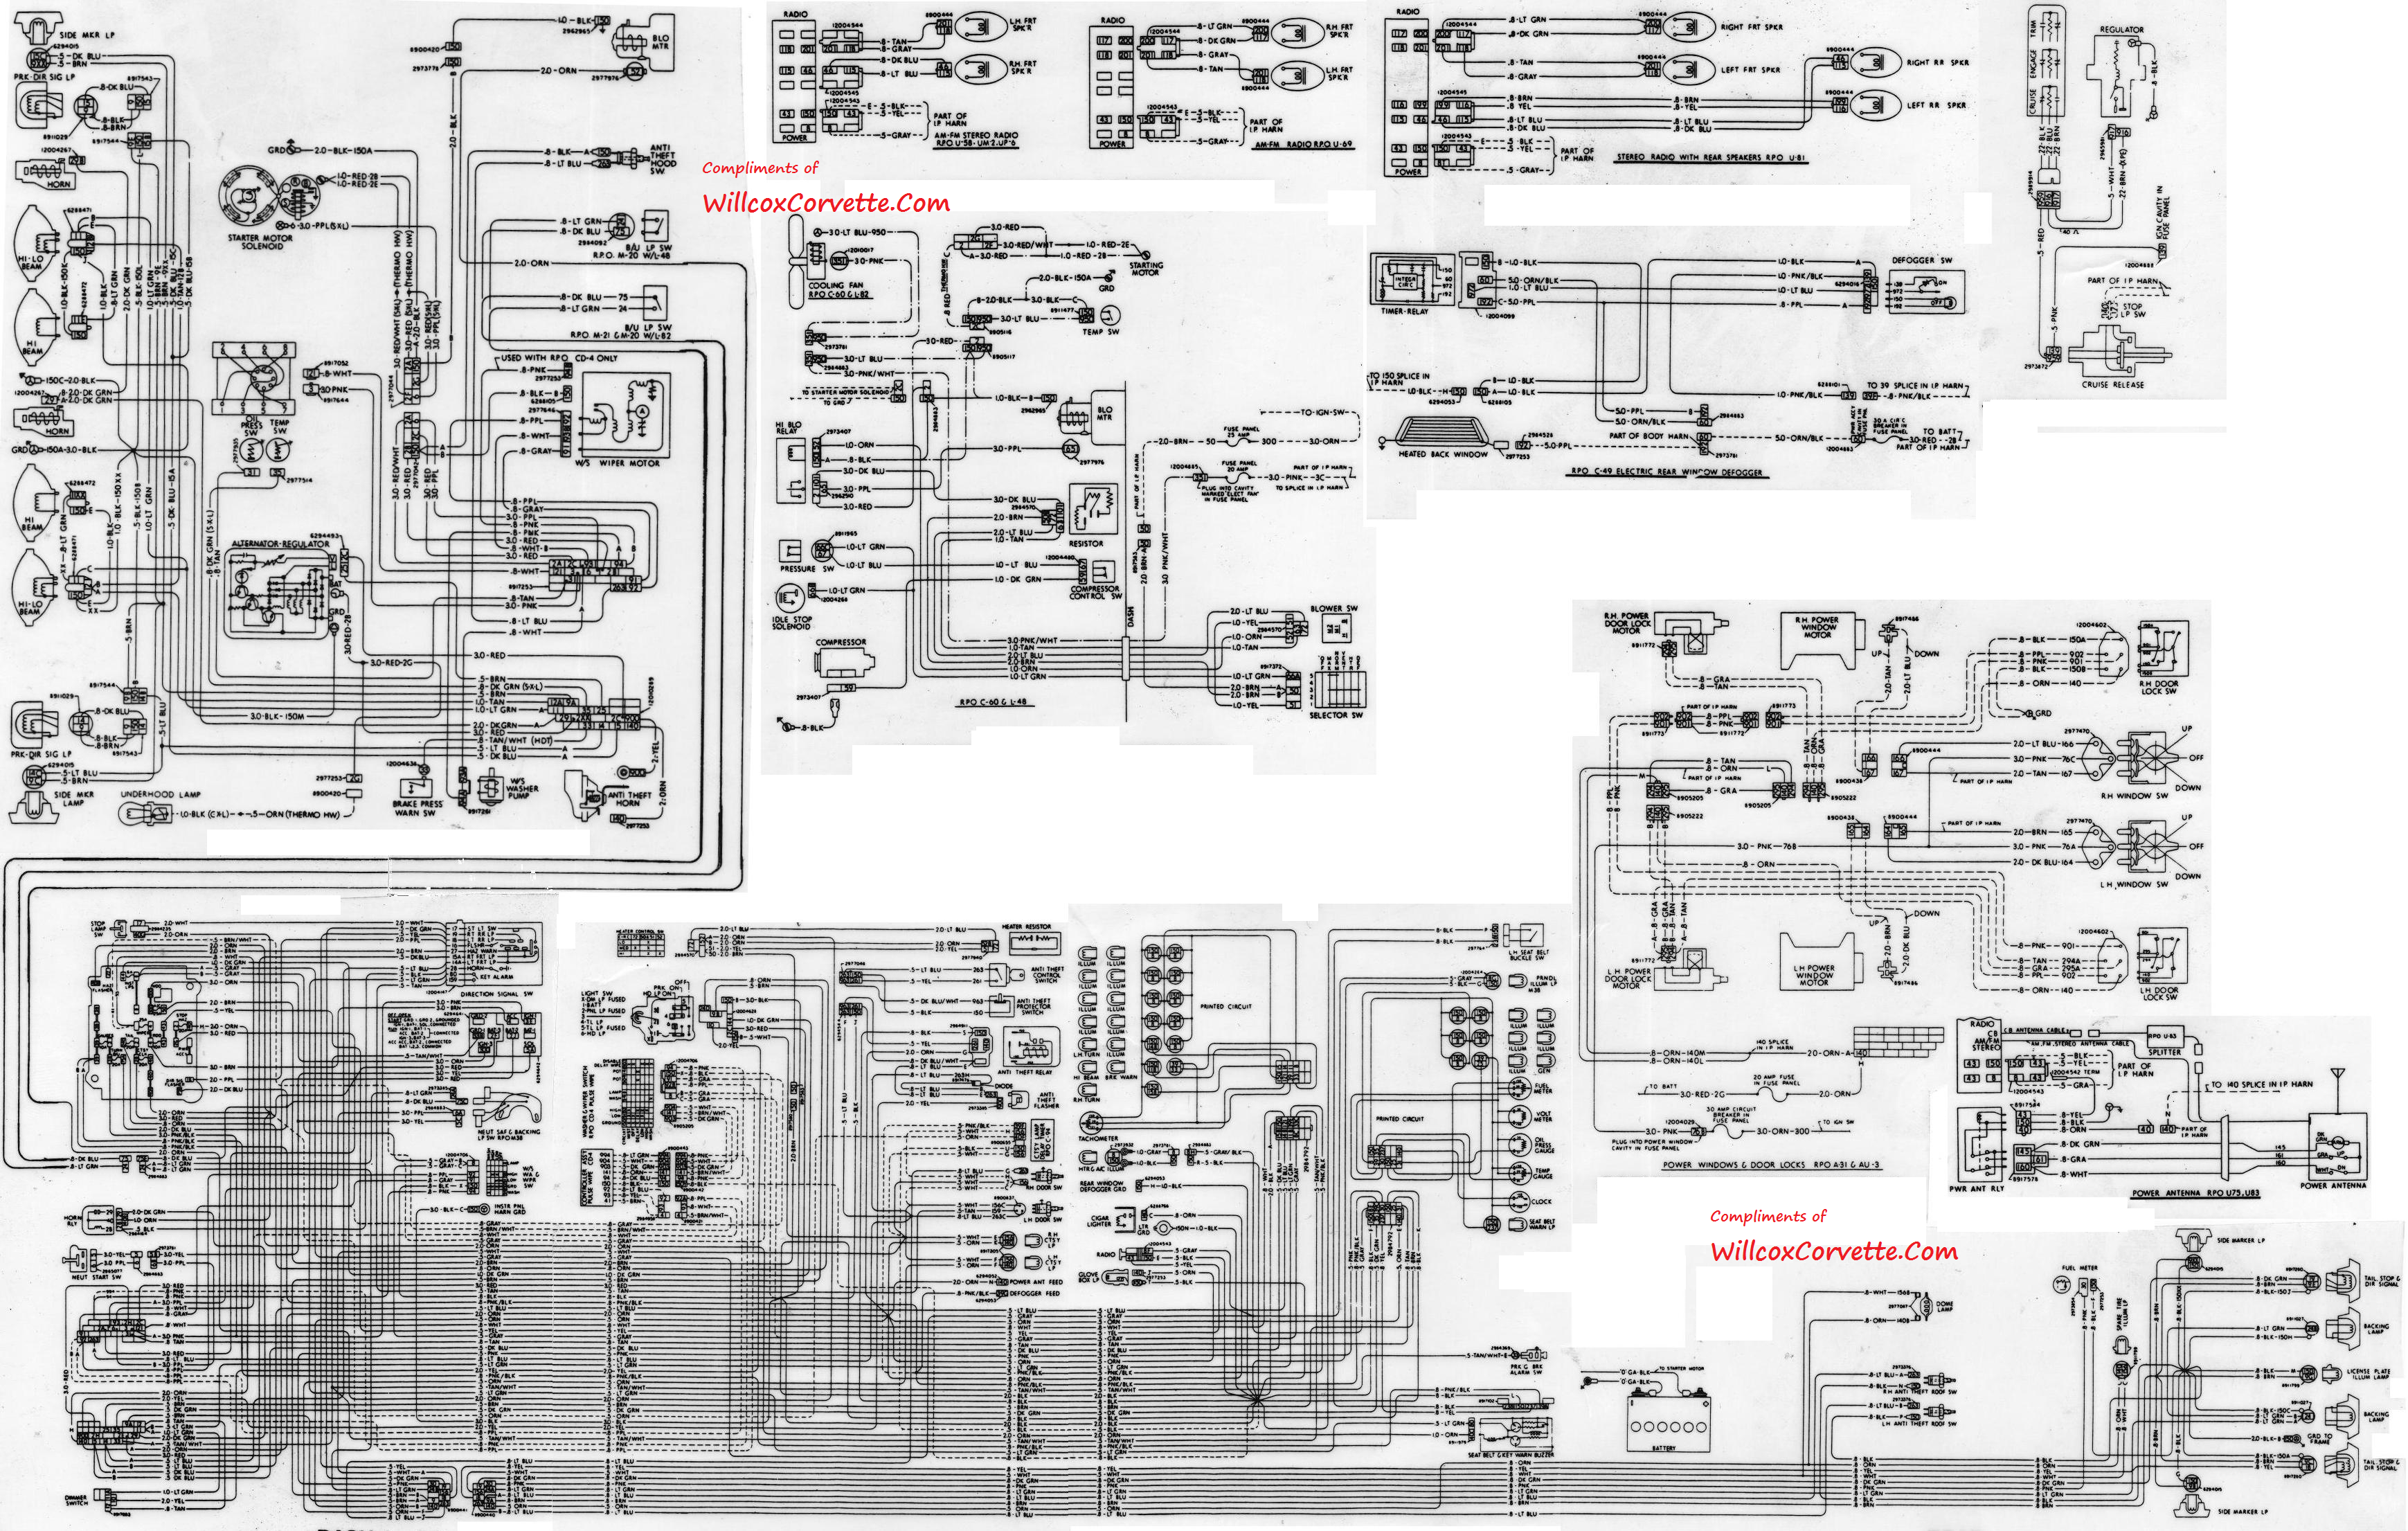 79 COMBINED TRACER SCHEMATIC 1975 corvette wiring diagram 1968 corvette dash wiring diagram 73 corvette wiring diagram pdf at honlapkeszites.co